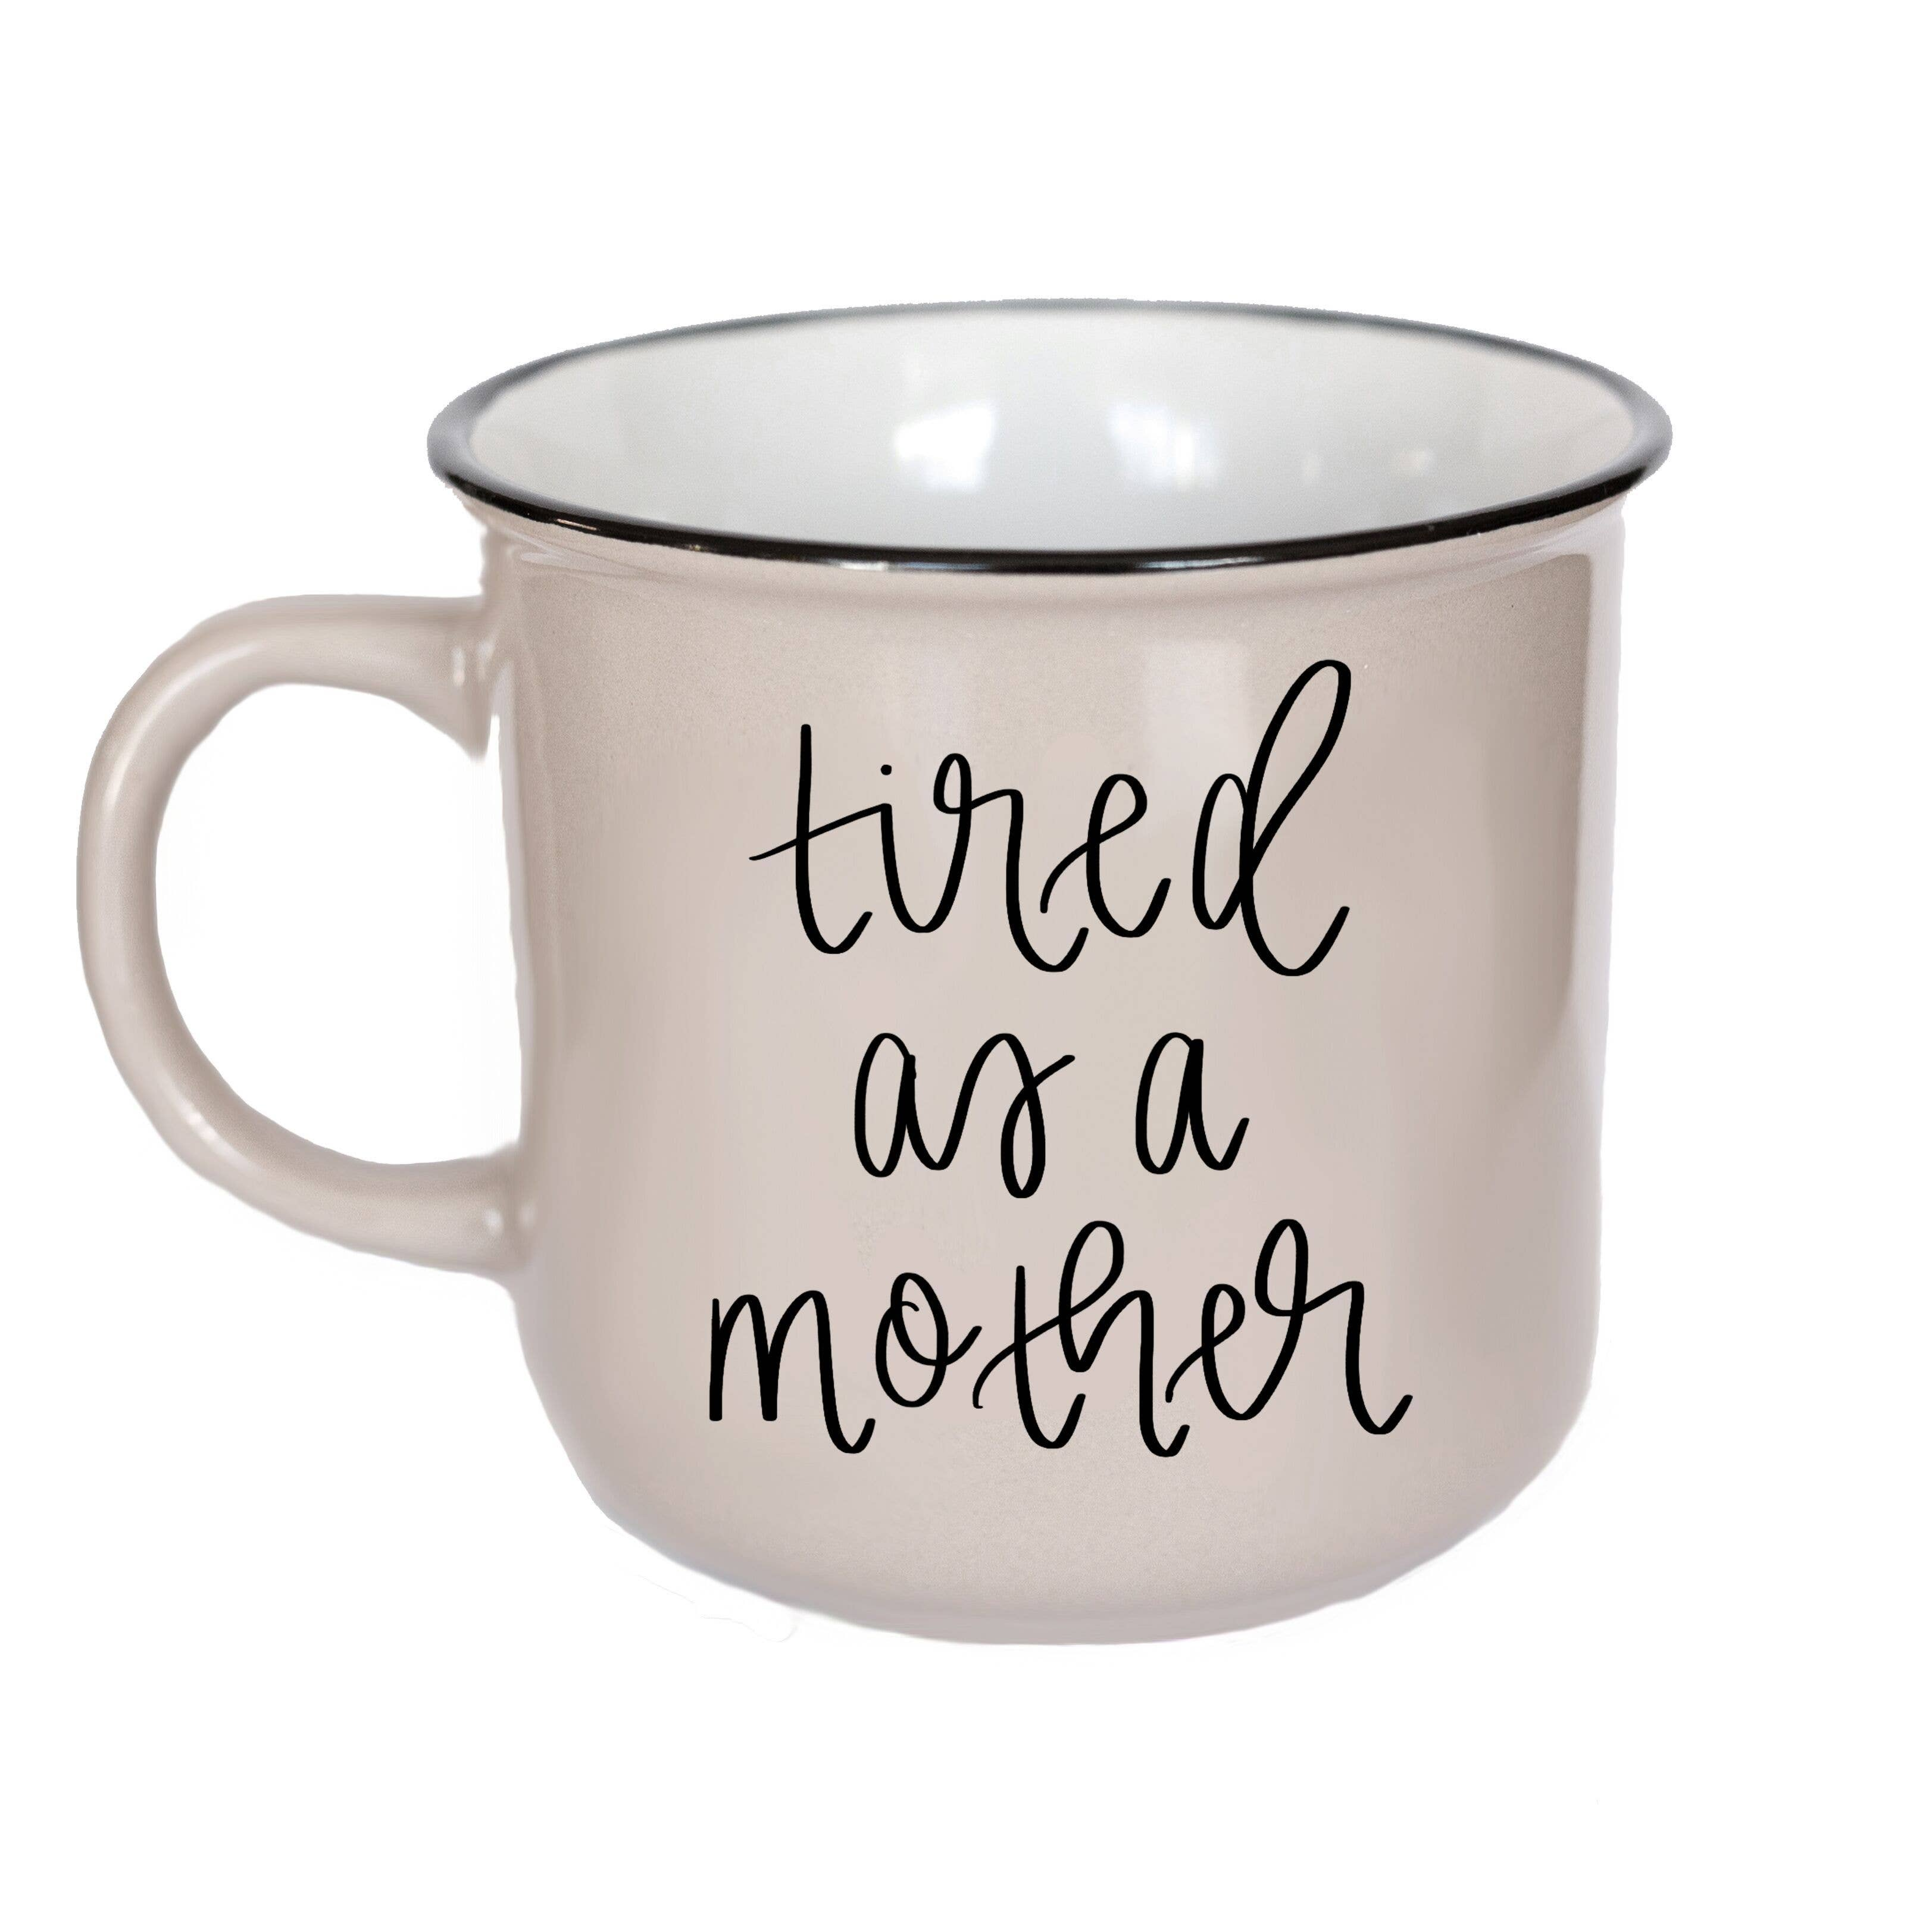 Sweet Water Decor - Tired As A Mother Campfire Coffee Mug